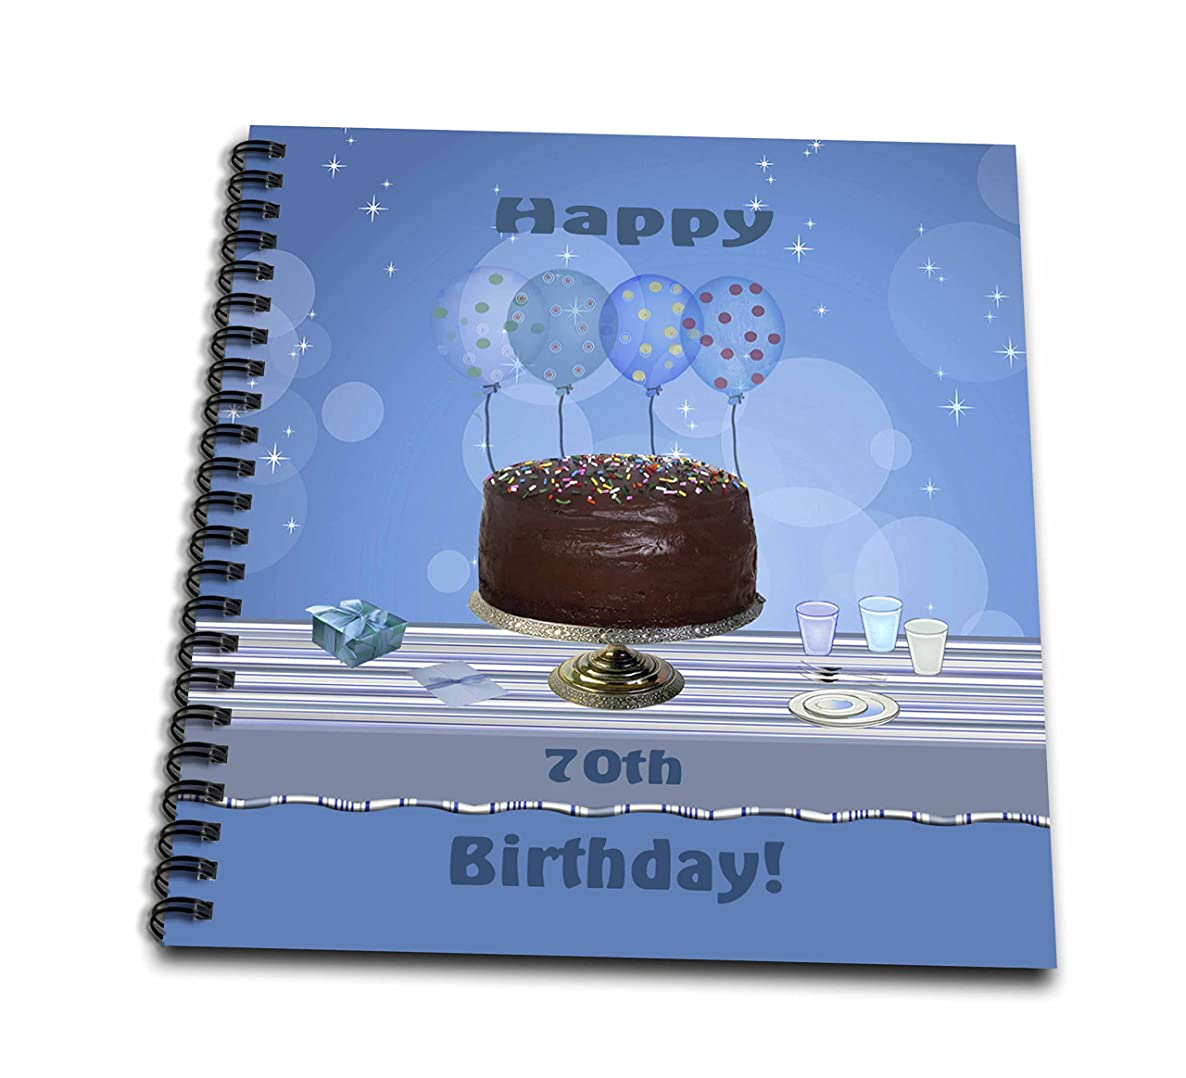 3dRose db_123956_2 70Th Birthday Party with Chocolate Cake and Blue Balloons Memory Book, 12 by 12-Inch